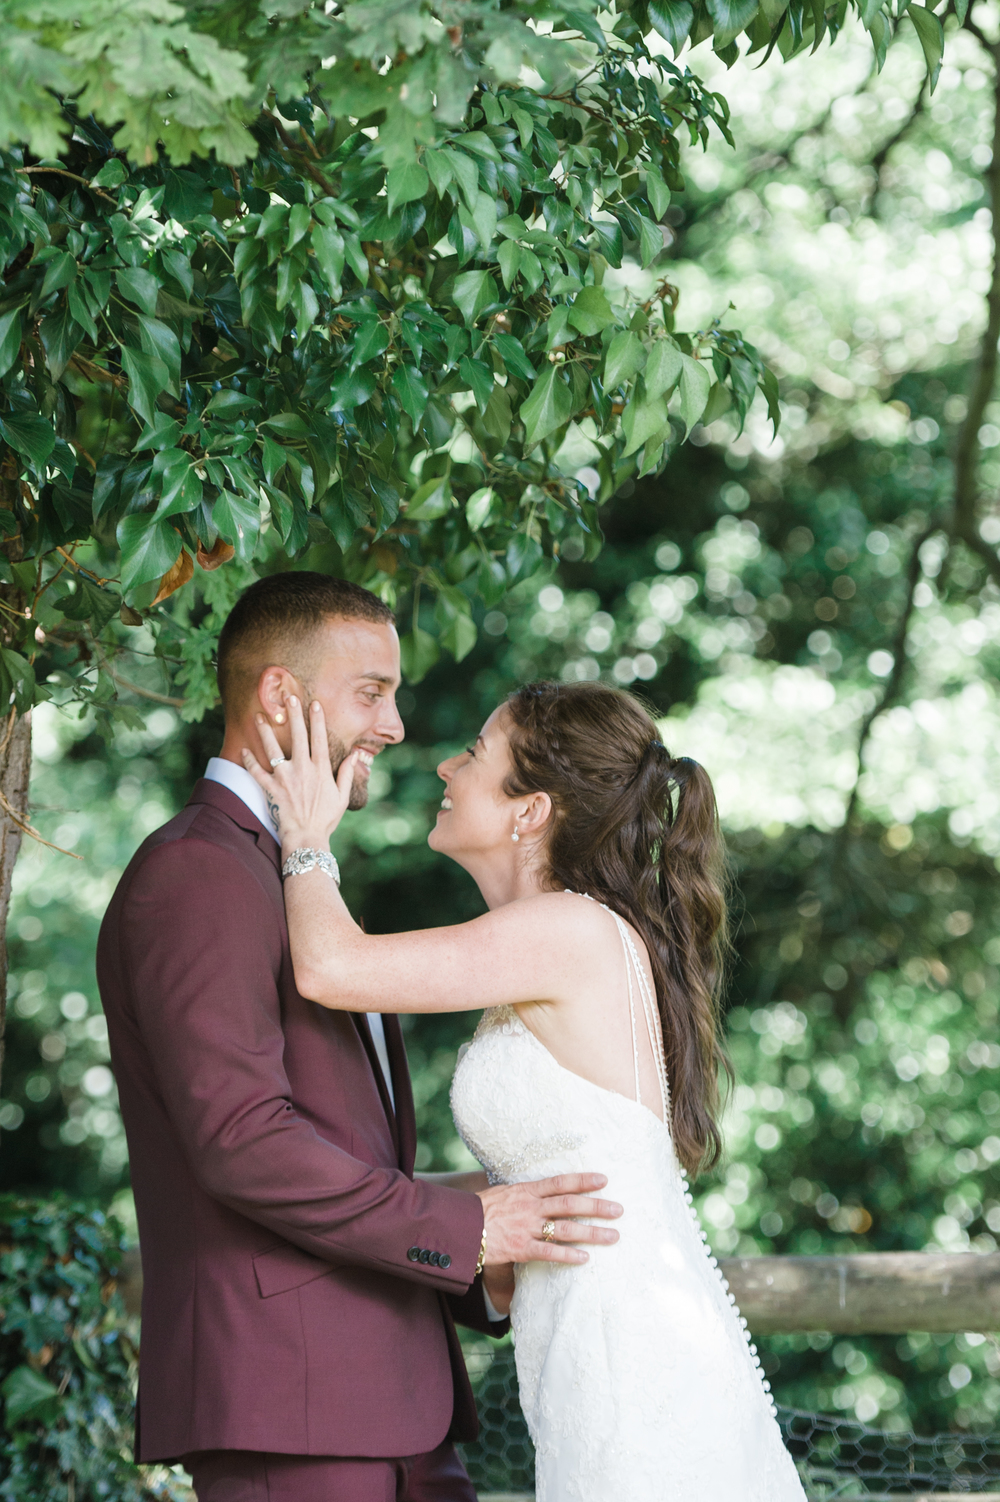 hannah-mcclune-photography-mill-house-hotel-swallowfield-rustic-wedding-burgundy-and-peach-wedding-59